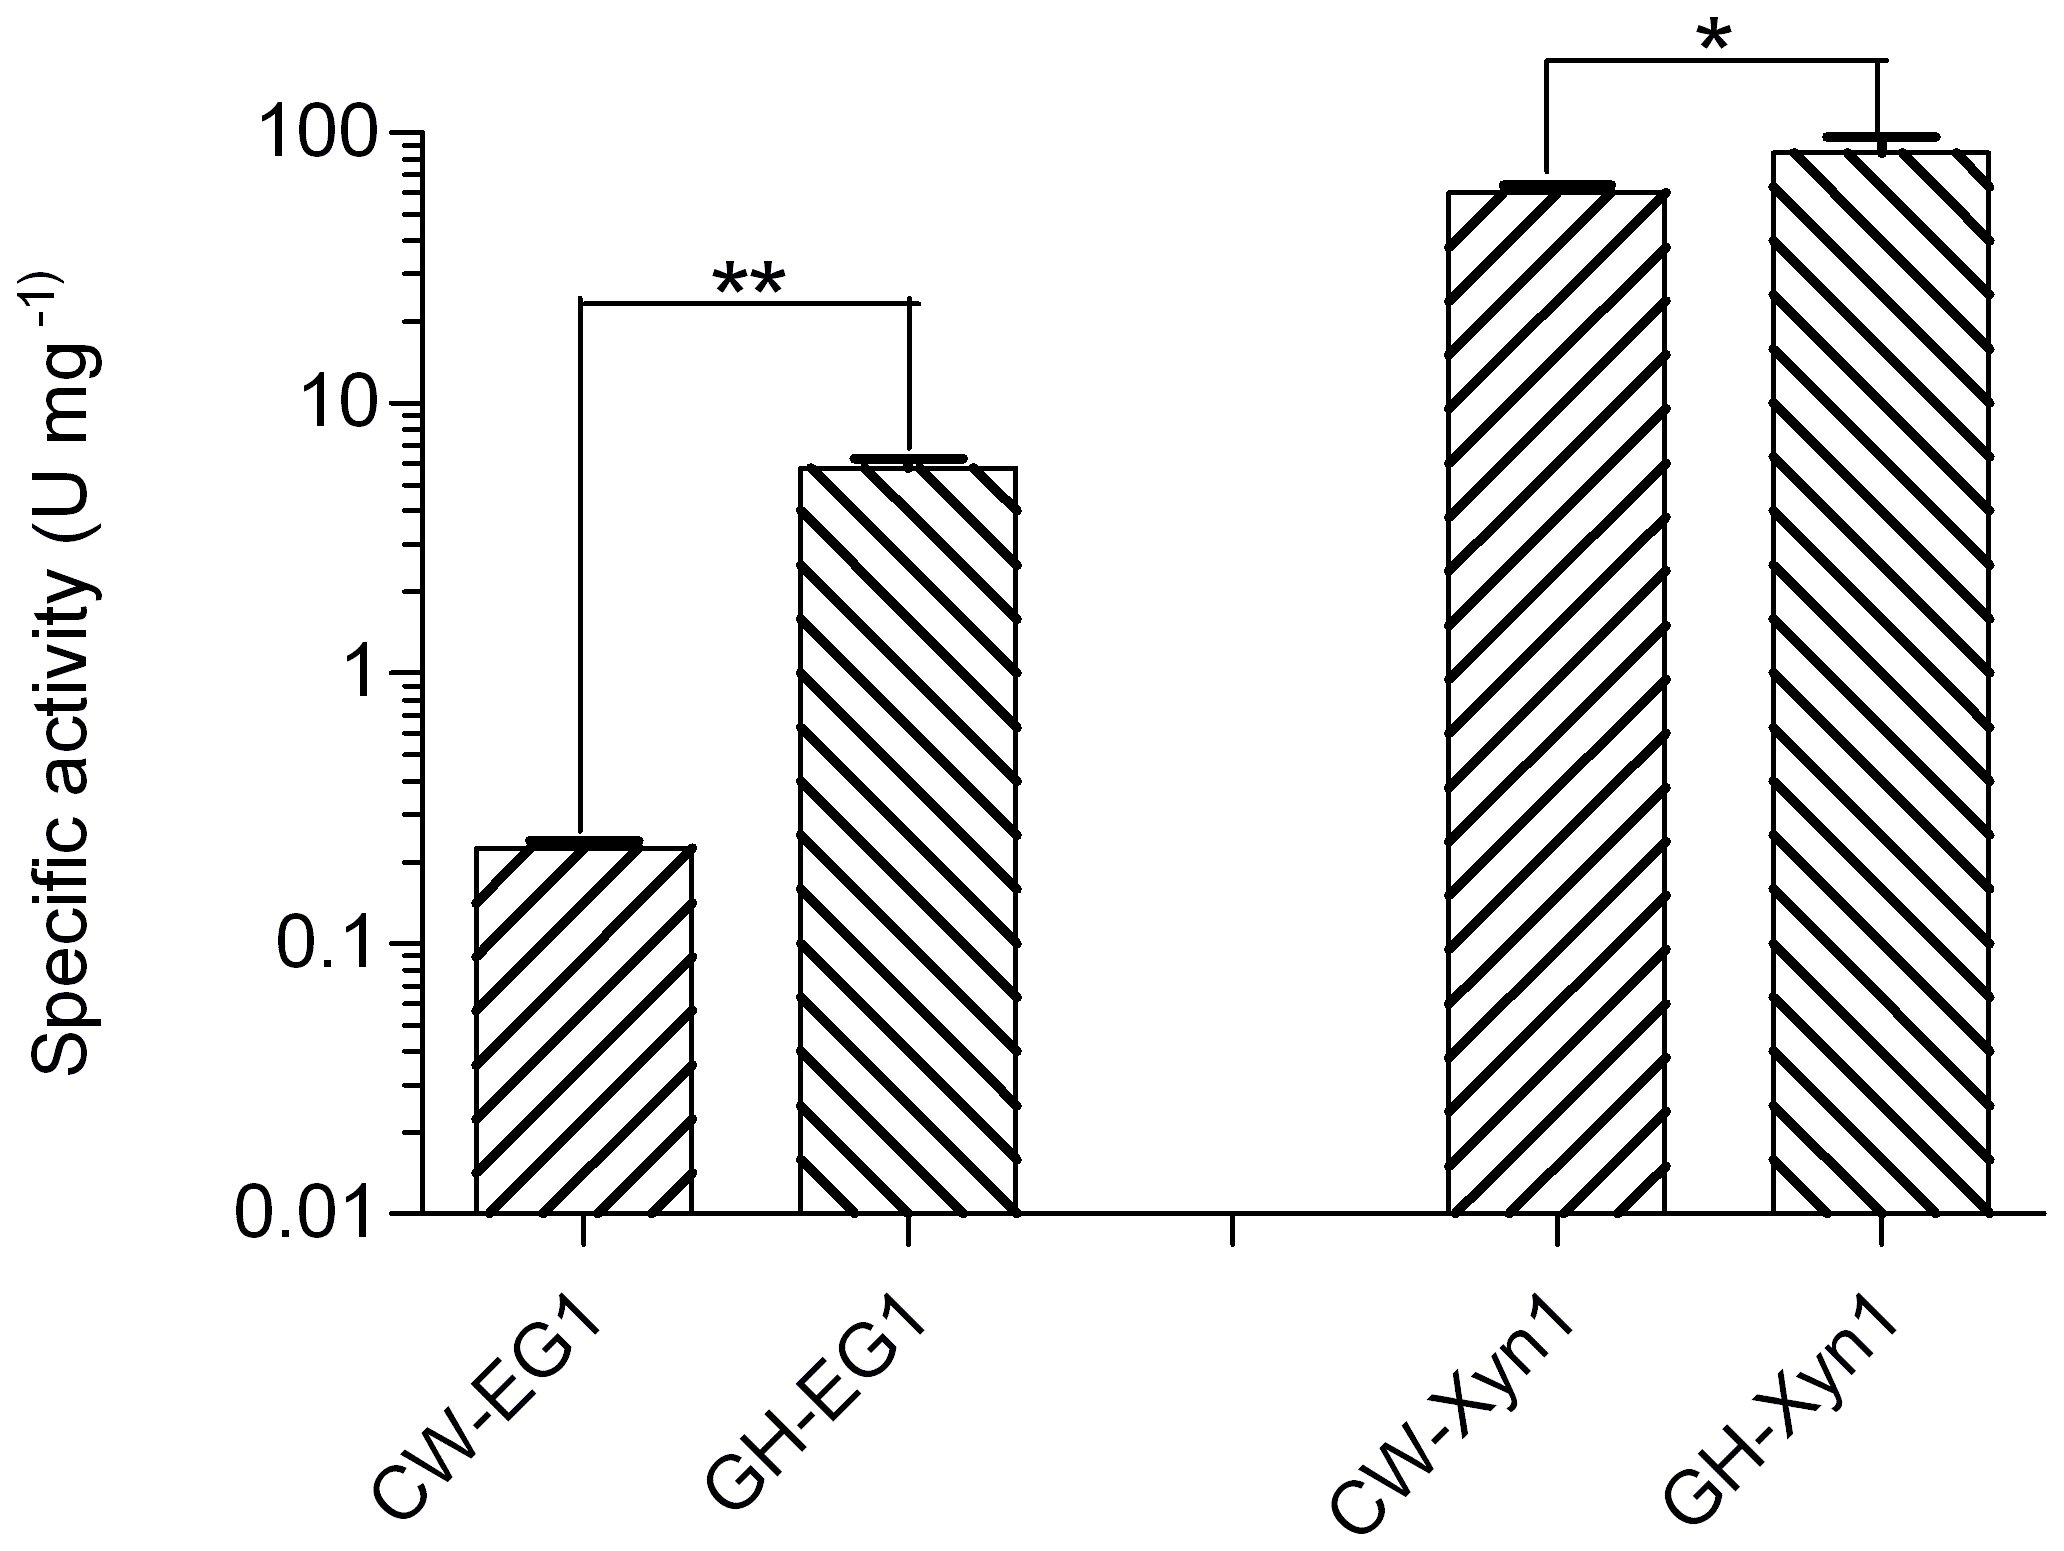 Comparison of the specific activities of enzymes important for biomass deconstruction from grasshopper and cutworm gut microbiomes.